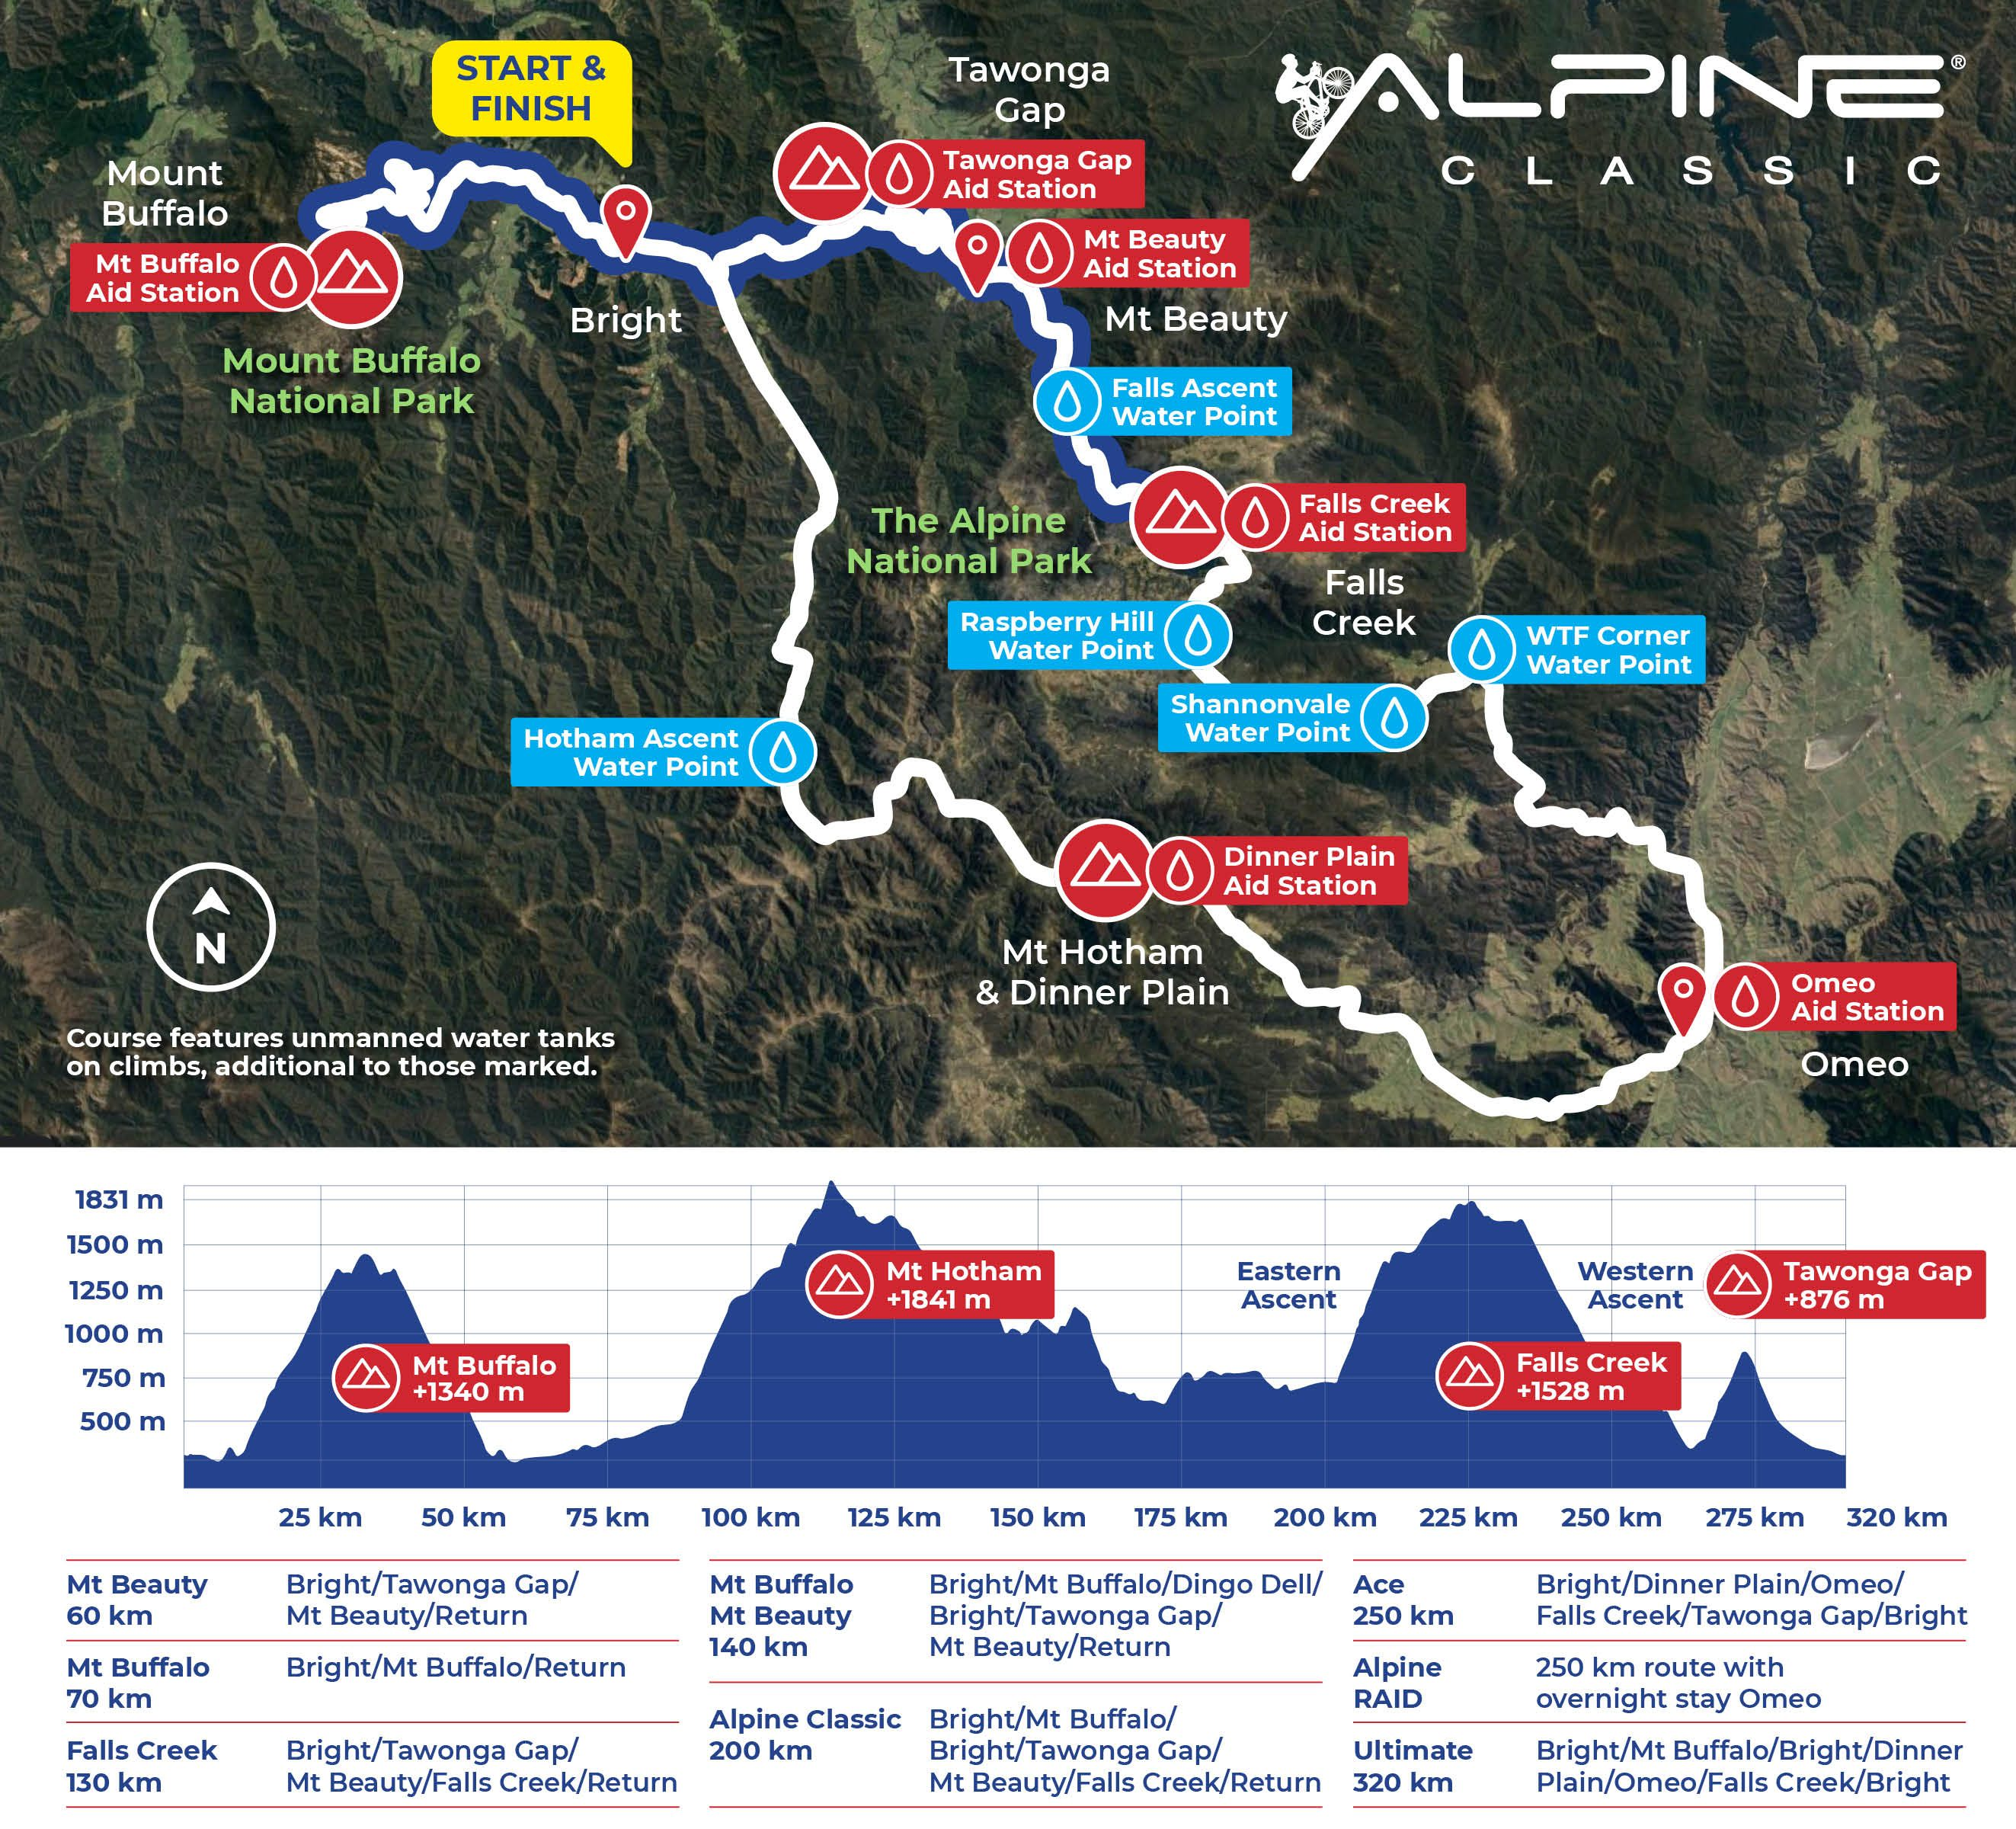 o2events_alpineclassic_map_2000x2000_5